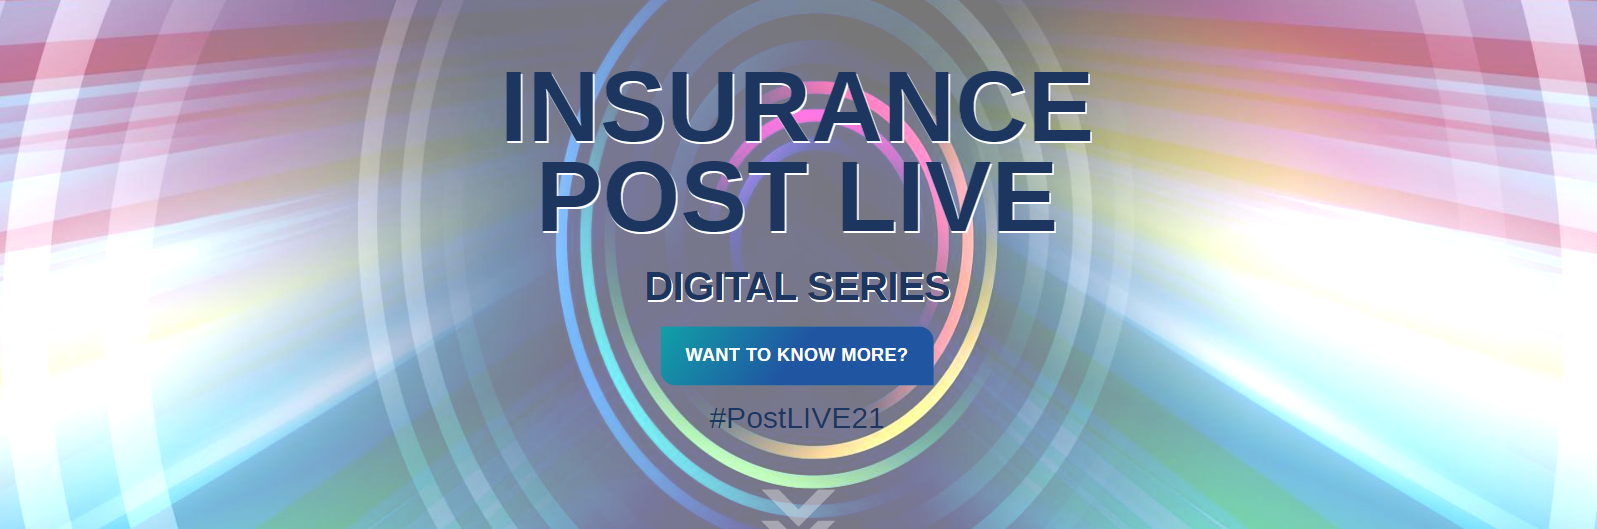 Insurance Post LIVE Technology Conference 2021